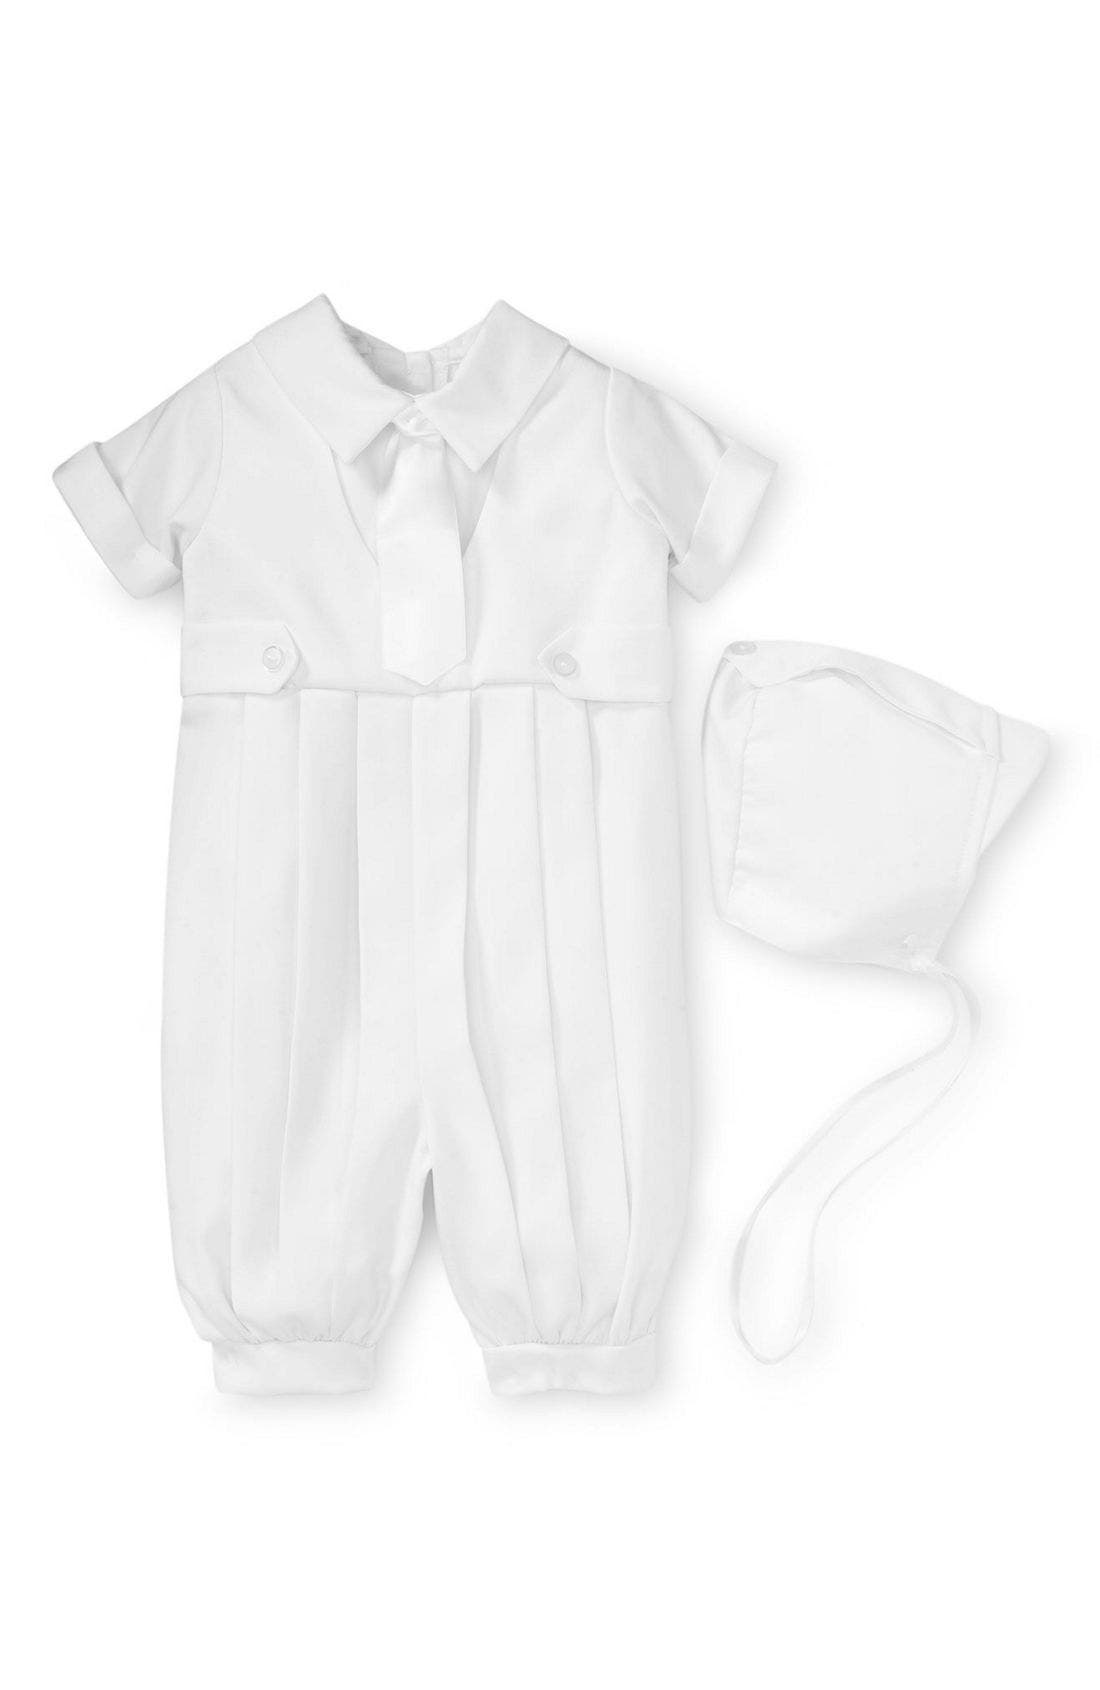 Main Image - Little Things Mean a Lot Gabardine Christening Romper (Baby)